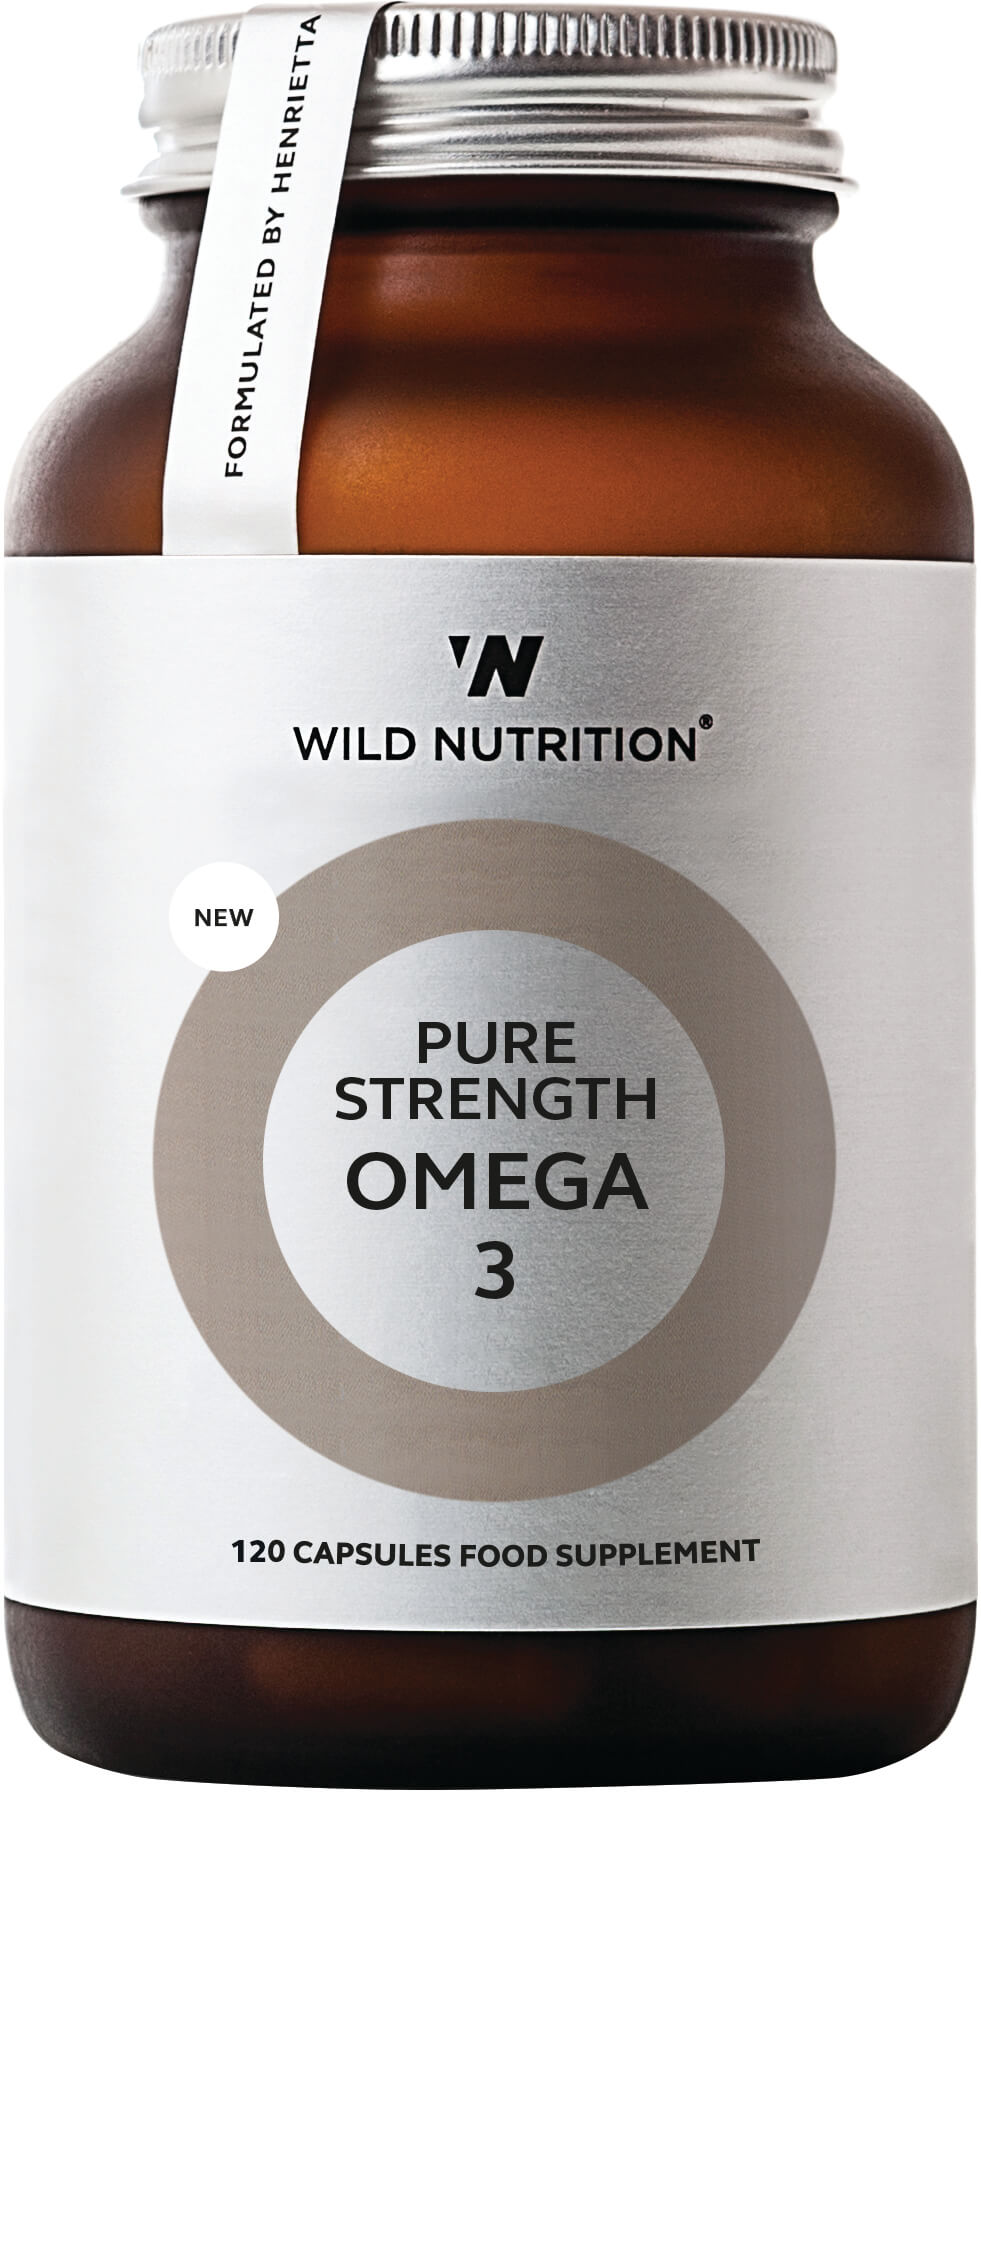 Pure Strength Omega 3 120's